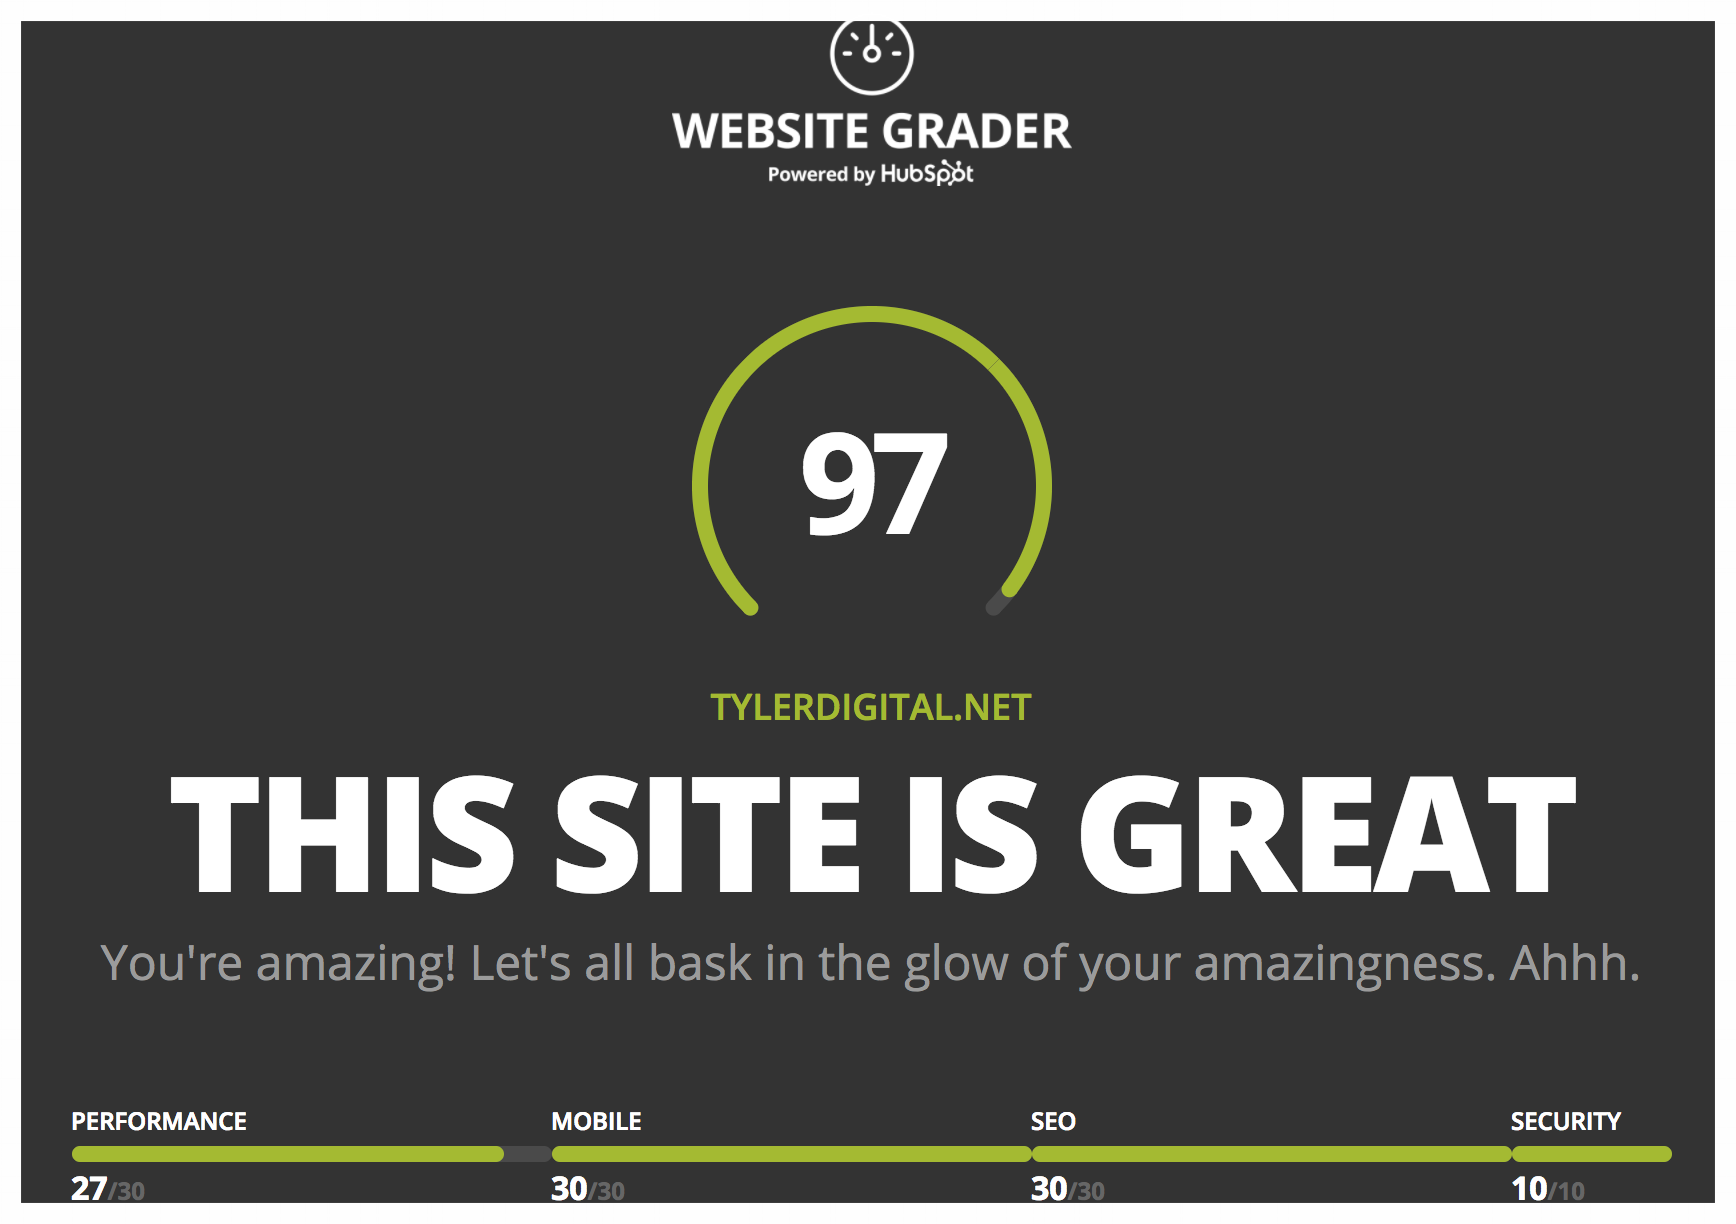 Click for a Website Grader review from Hubspot.